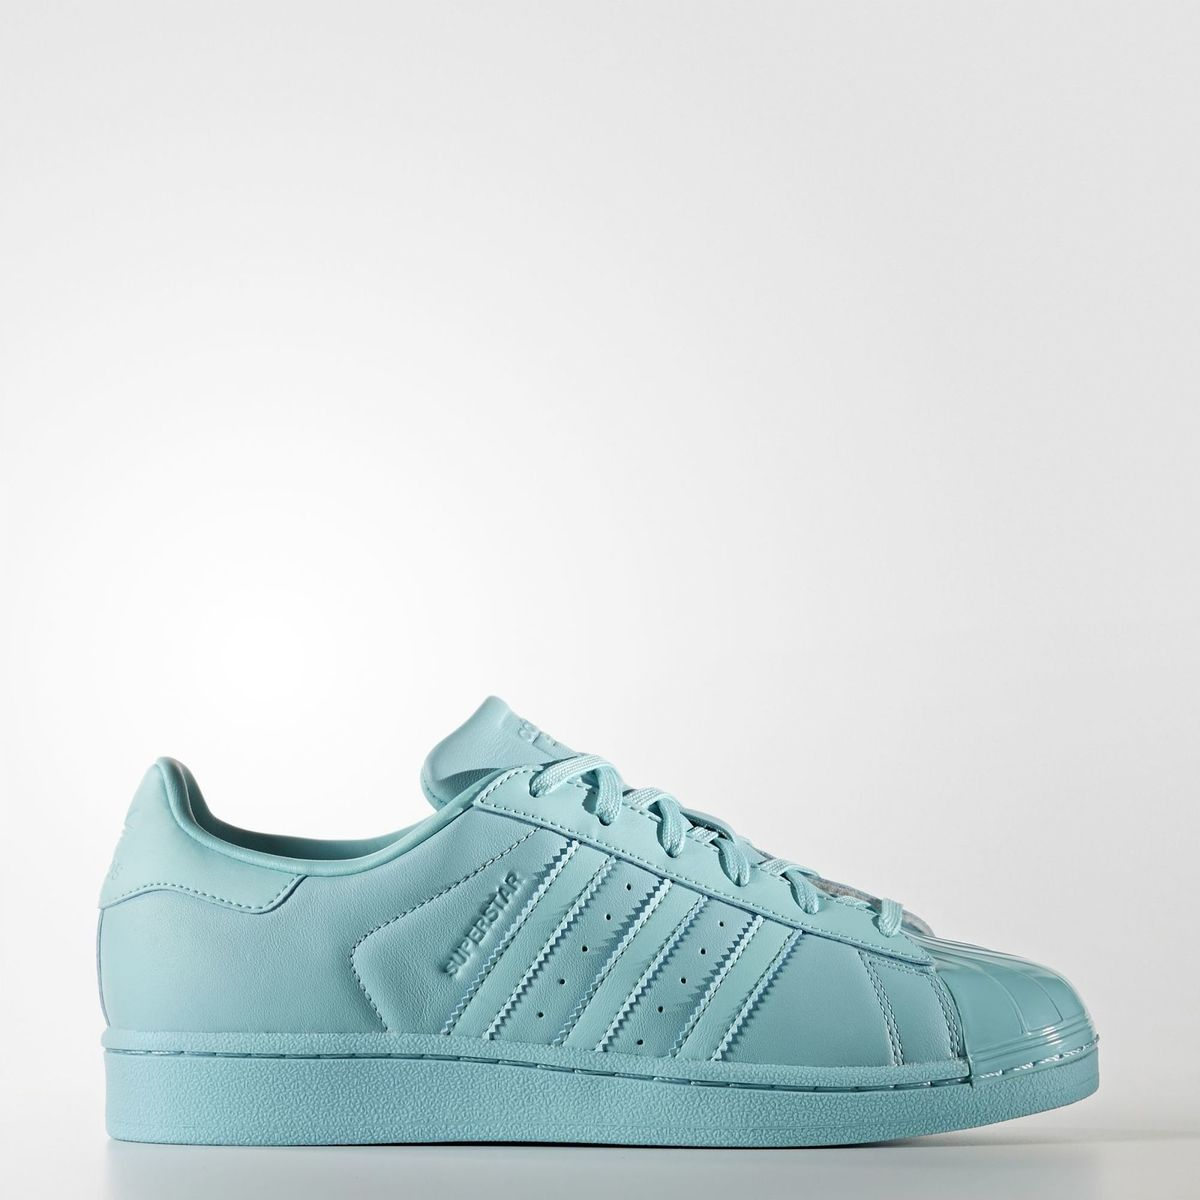 check out 2146f 78ede Kapadaa: Adidas Blue Superstar Glossy Toe W Sports Sneakers For Women-  BB0529